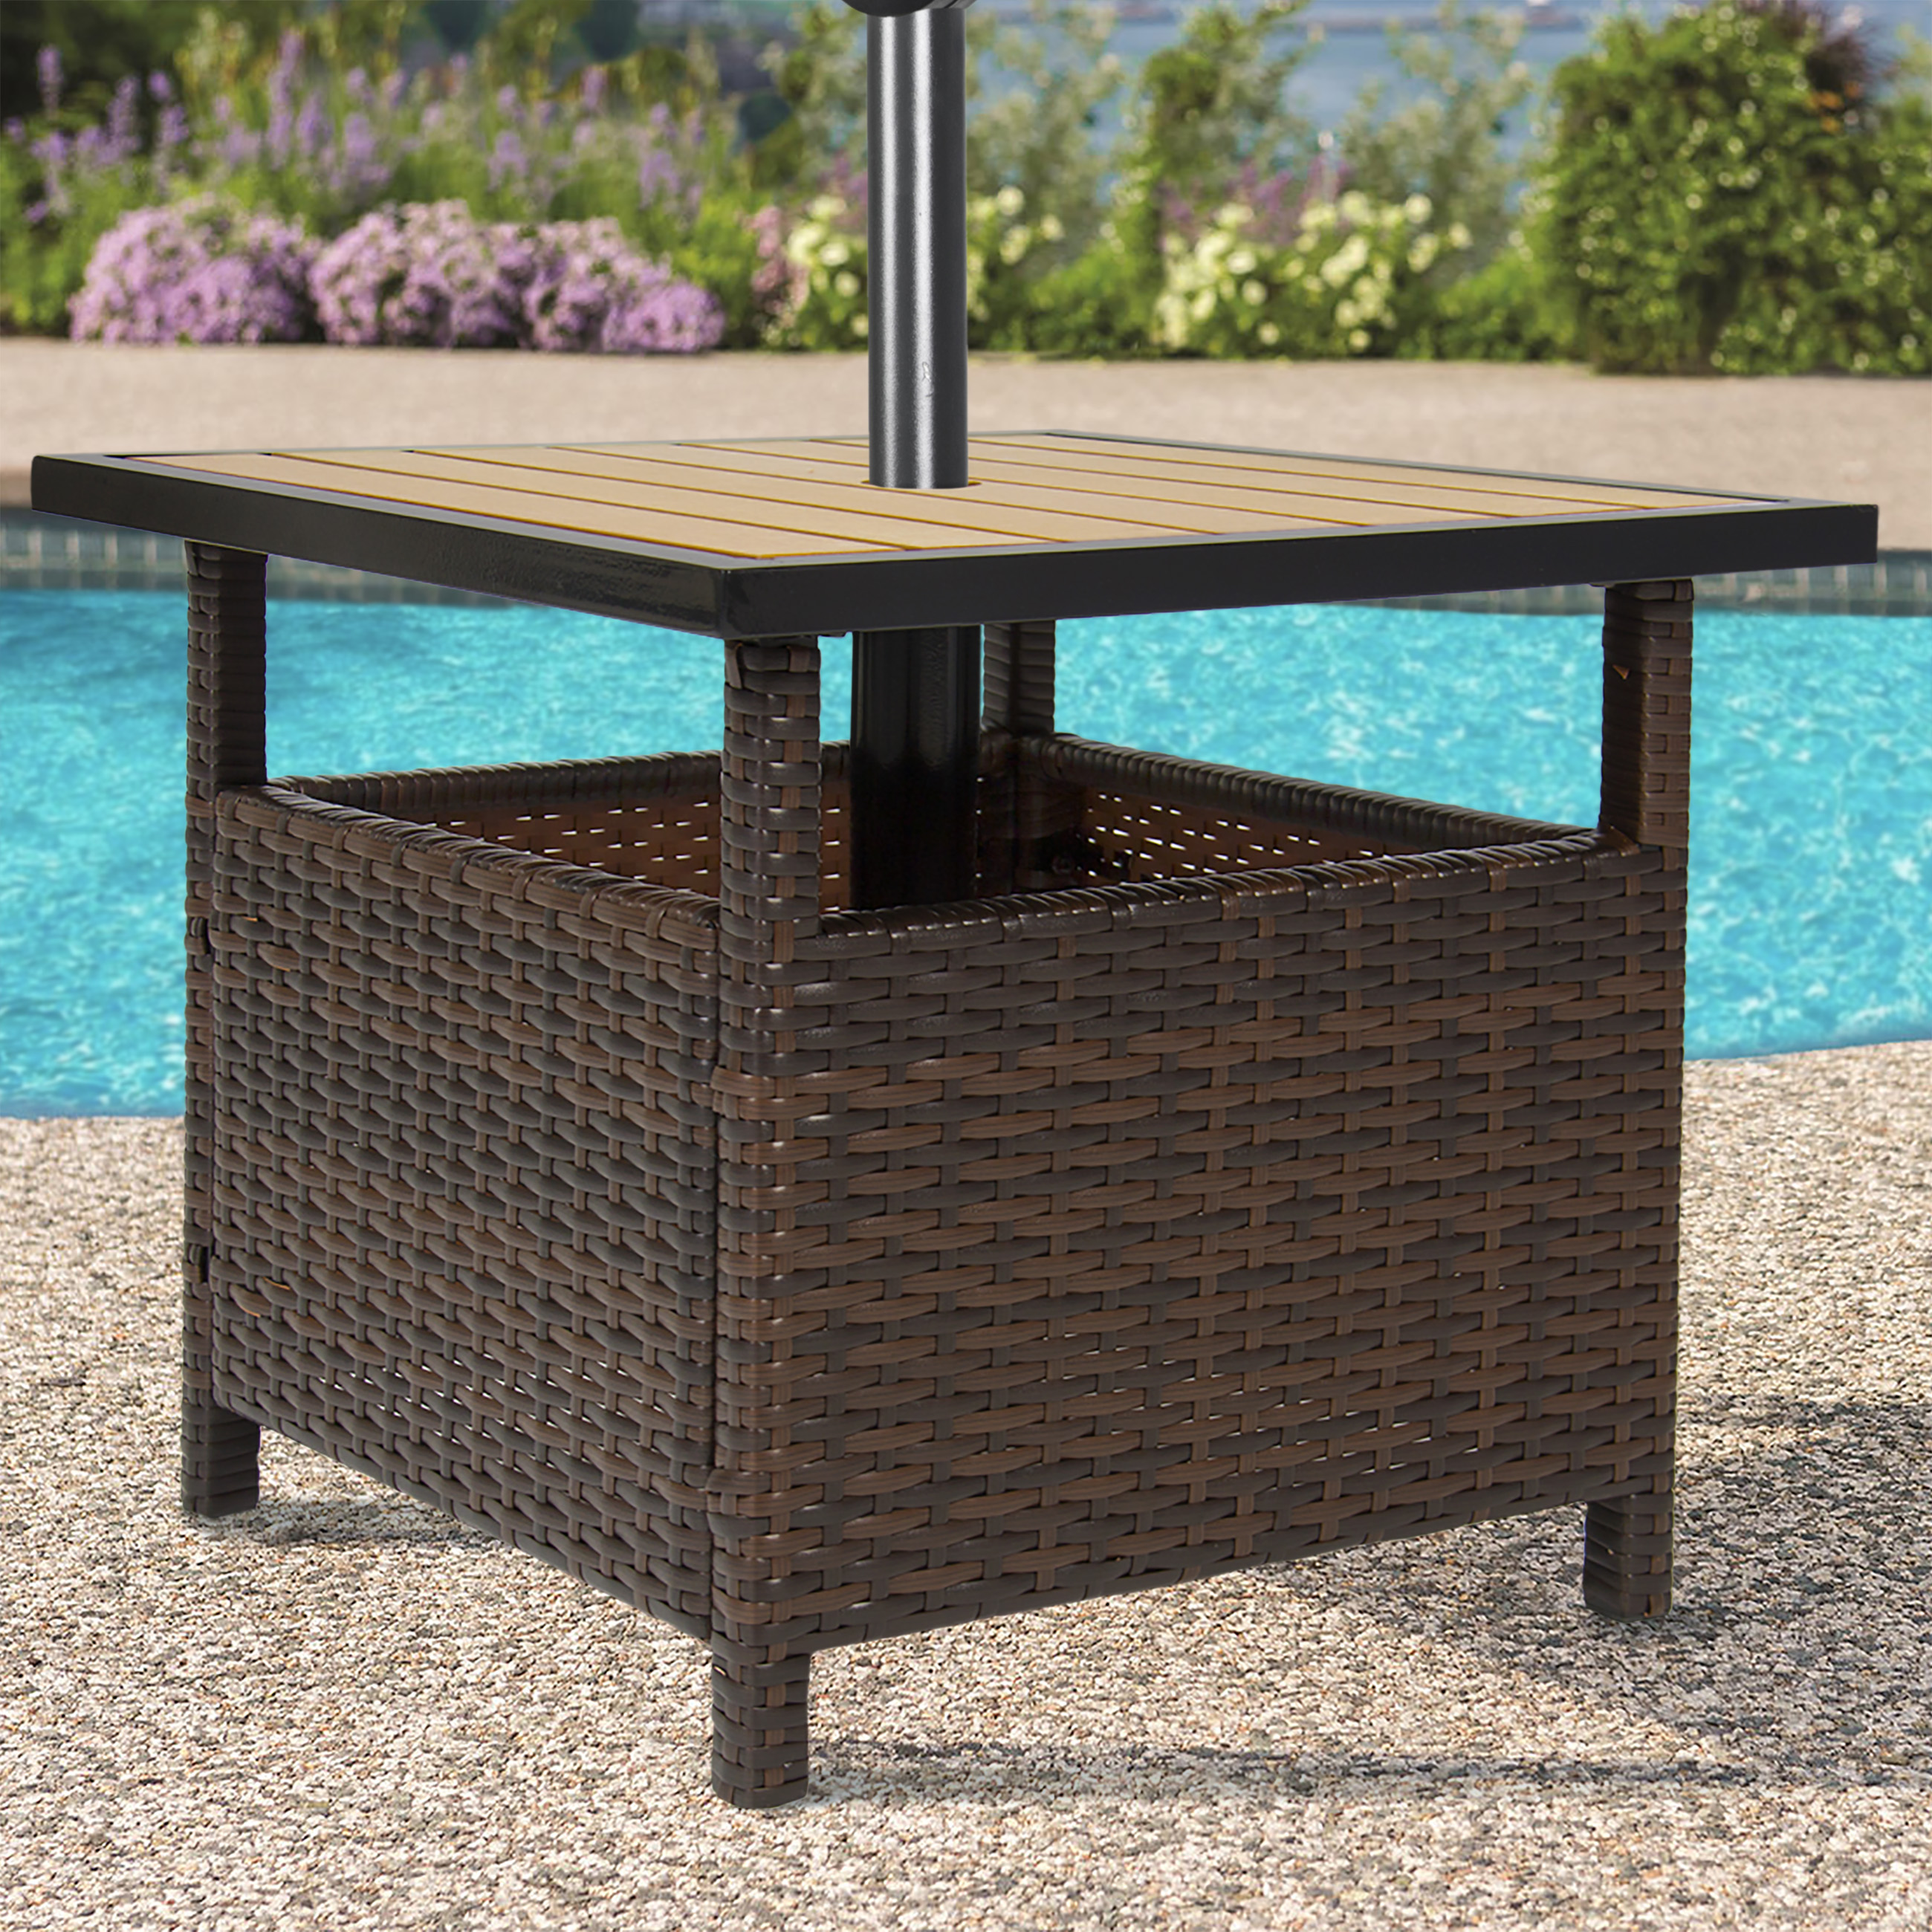 Best Choice Products Outdoor Furniture Wicker Rattan Patio Umbrella Stand Table for... by Best Choice Products